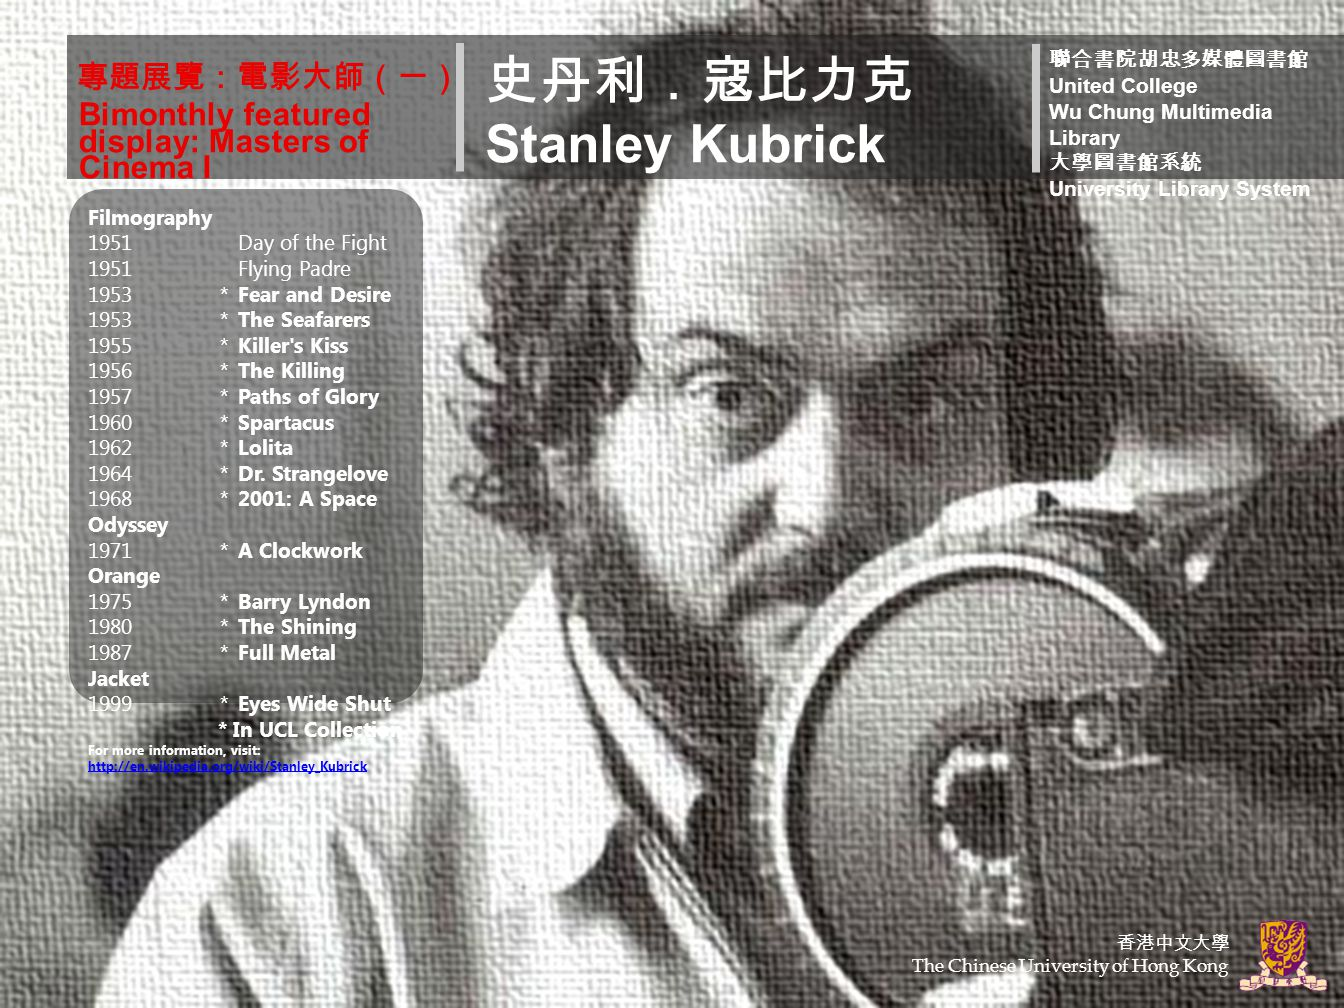 專題展覽:電影大師(一) 史丹利.寇比力克 Stanley Kubrick 聯合書院胡忠多媒體圖書館 United College Wu Chung Multimedia Library 大學圖書館系統 University Library System Bimonthly featured display: Masters of Cinema I Filmography 1951Day of the Fight 1951Flying Padre 1953*Fear and Desire 1953*The Seafarers 1955*Killer s Kiss 1956*The Killing 1957*Paths of Glory 1960*Spartacus 1962*Lolita 1964*Dr.